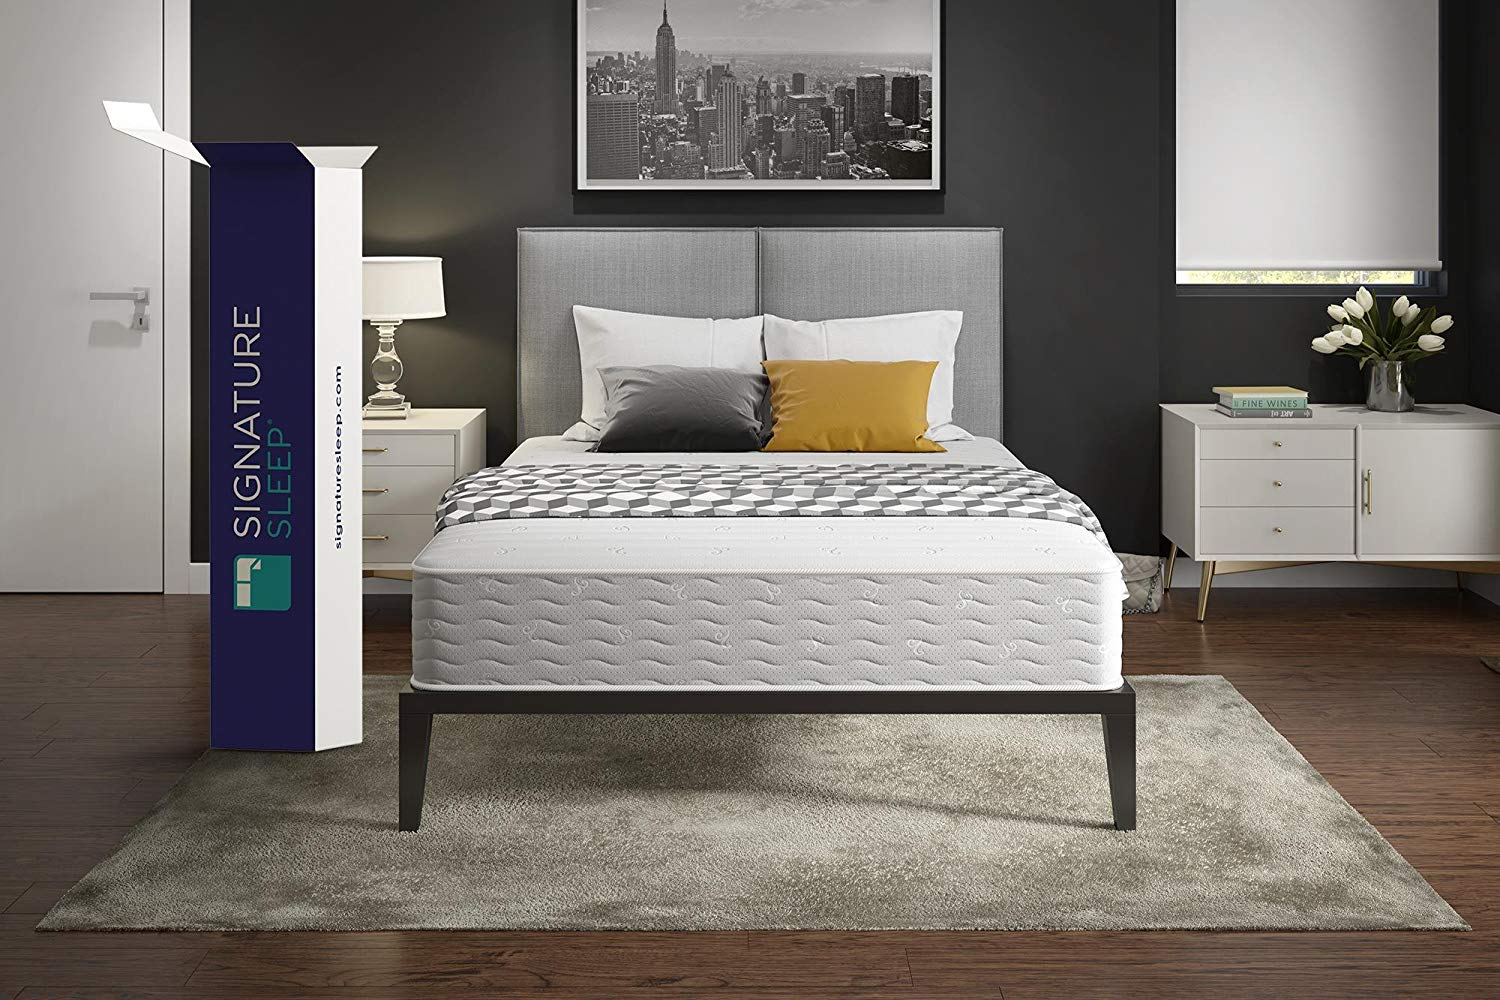 Signature Sleep Hybrid Mattress